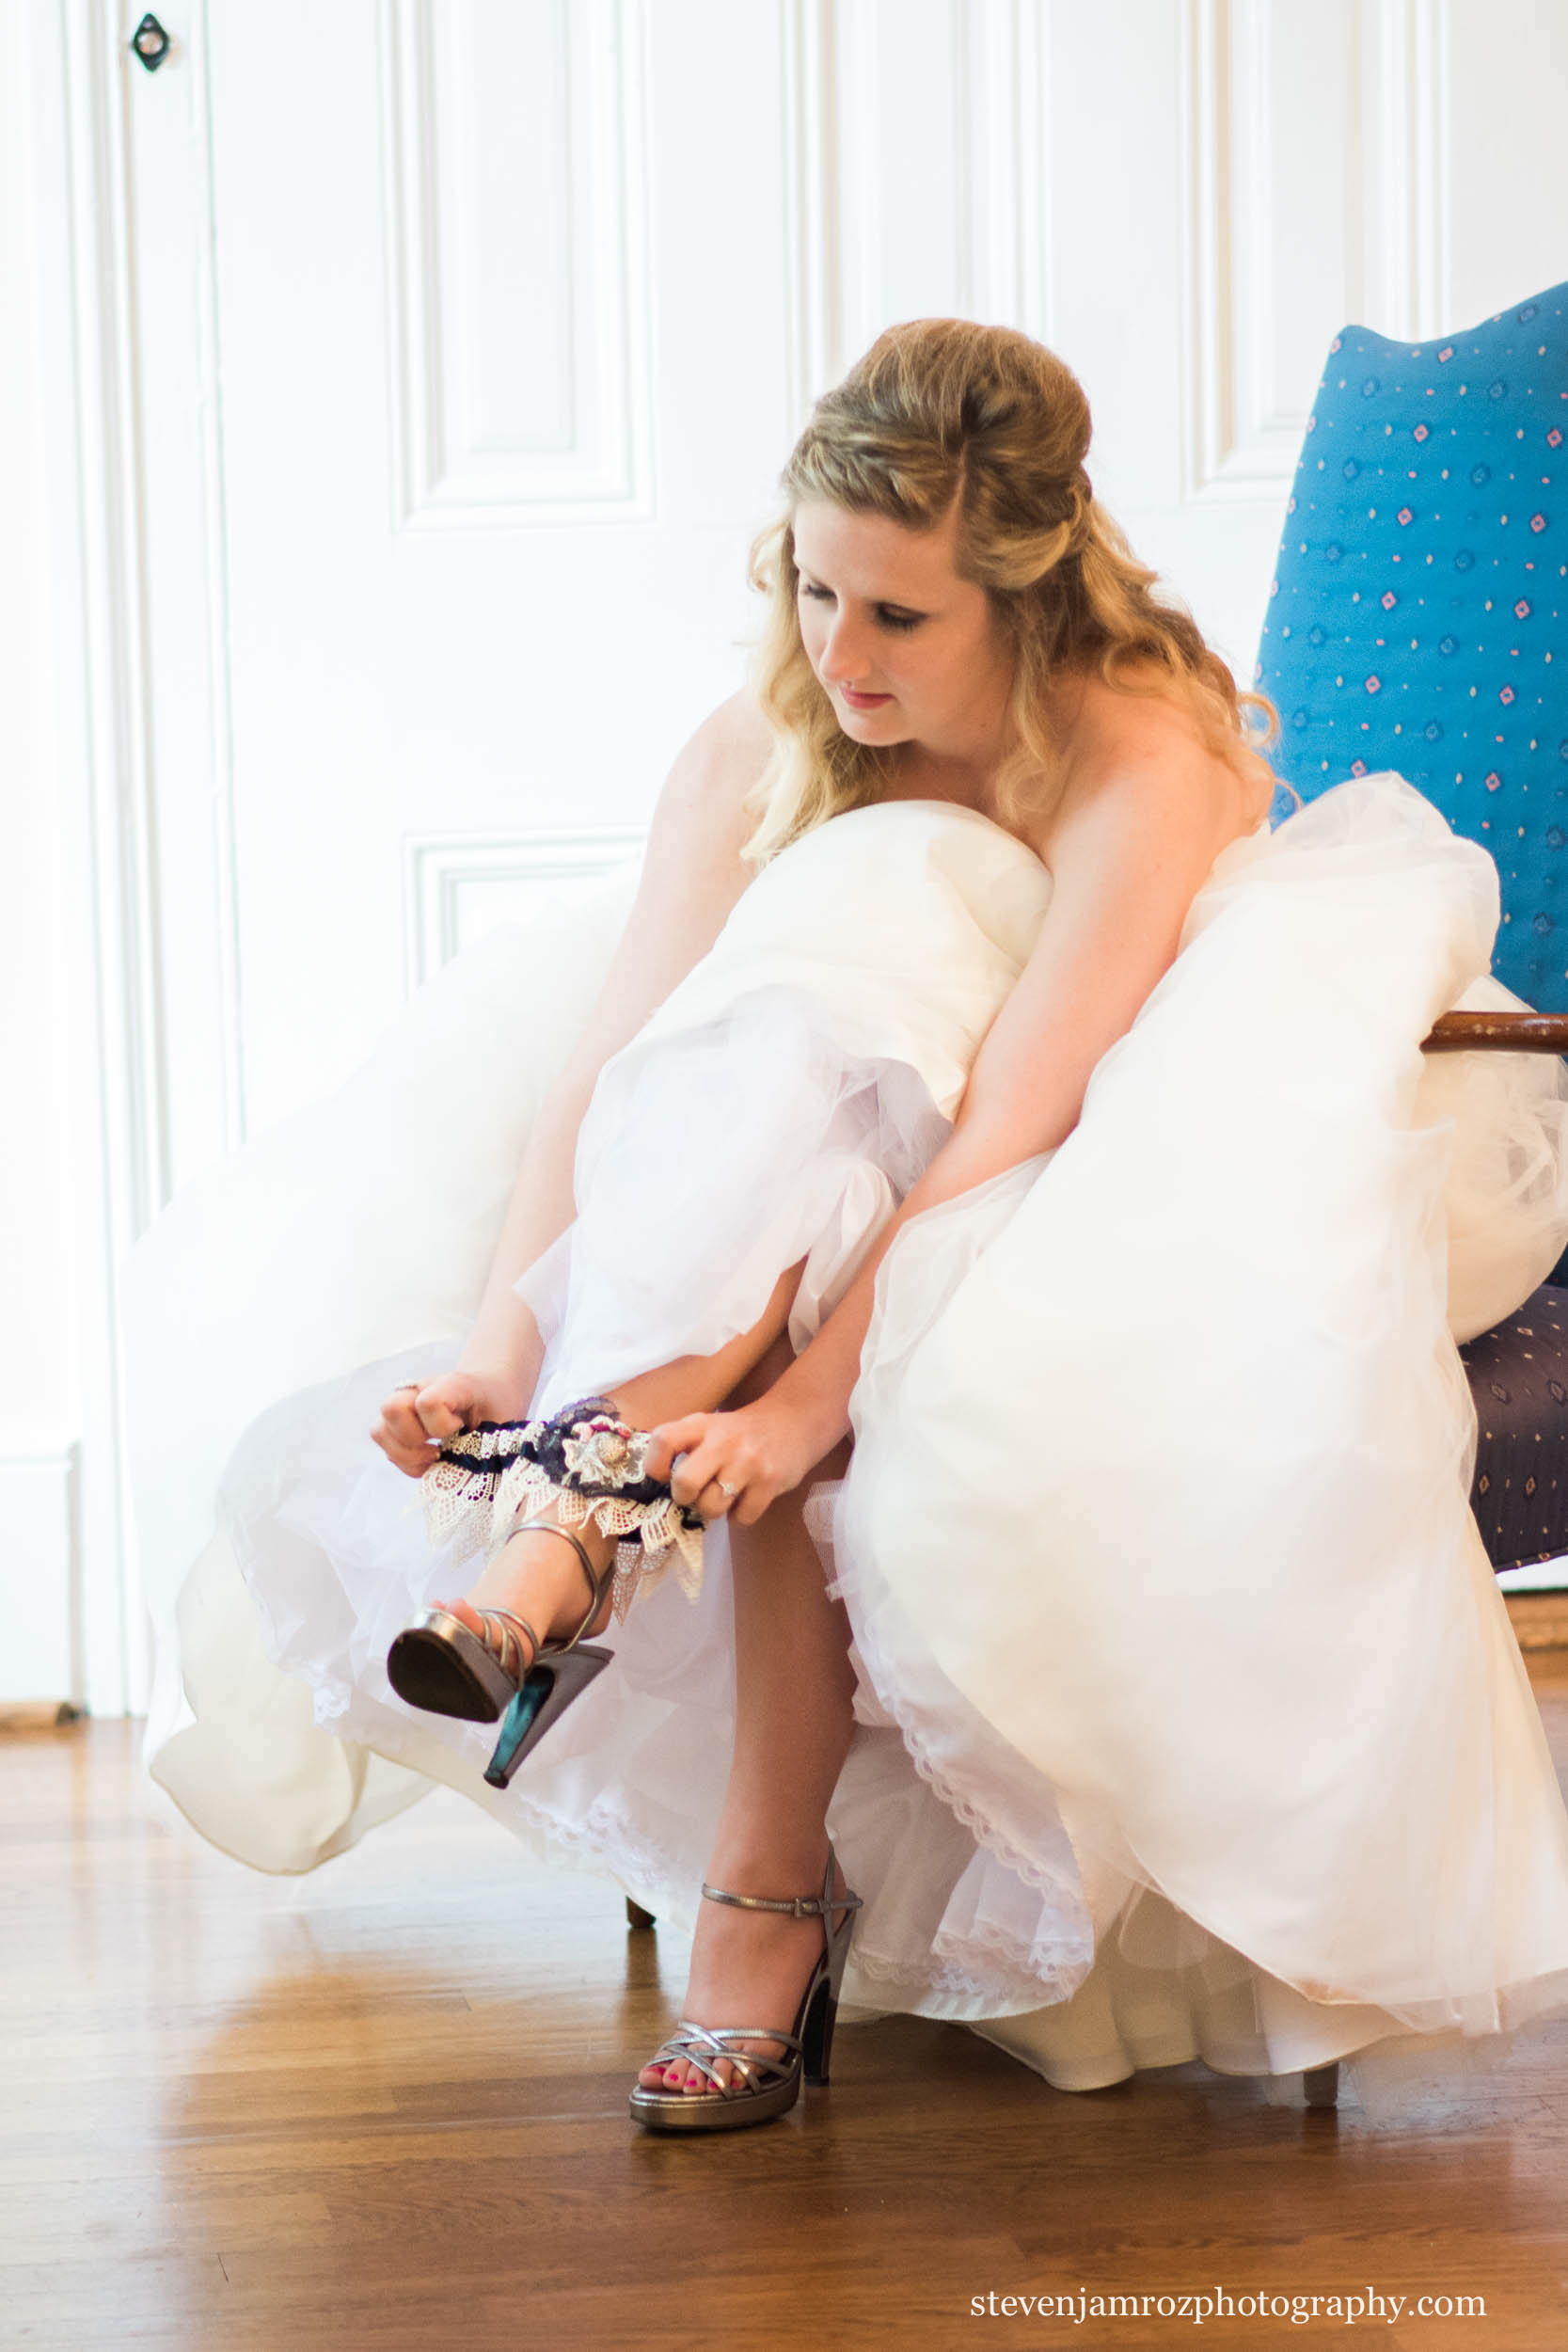 garter-putting-on-getting-ready-wedding-steven-jamroz-photography-0022.jpg